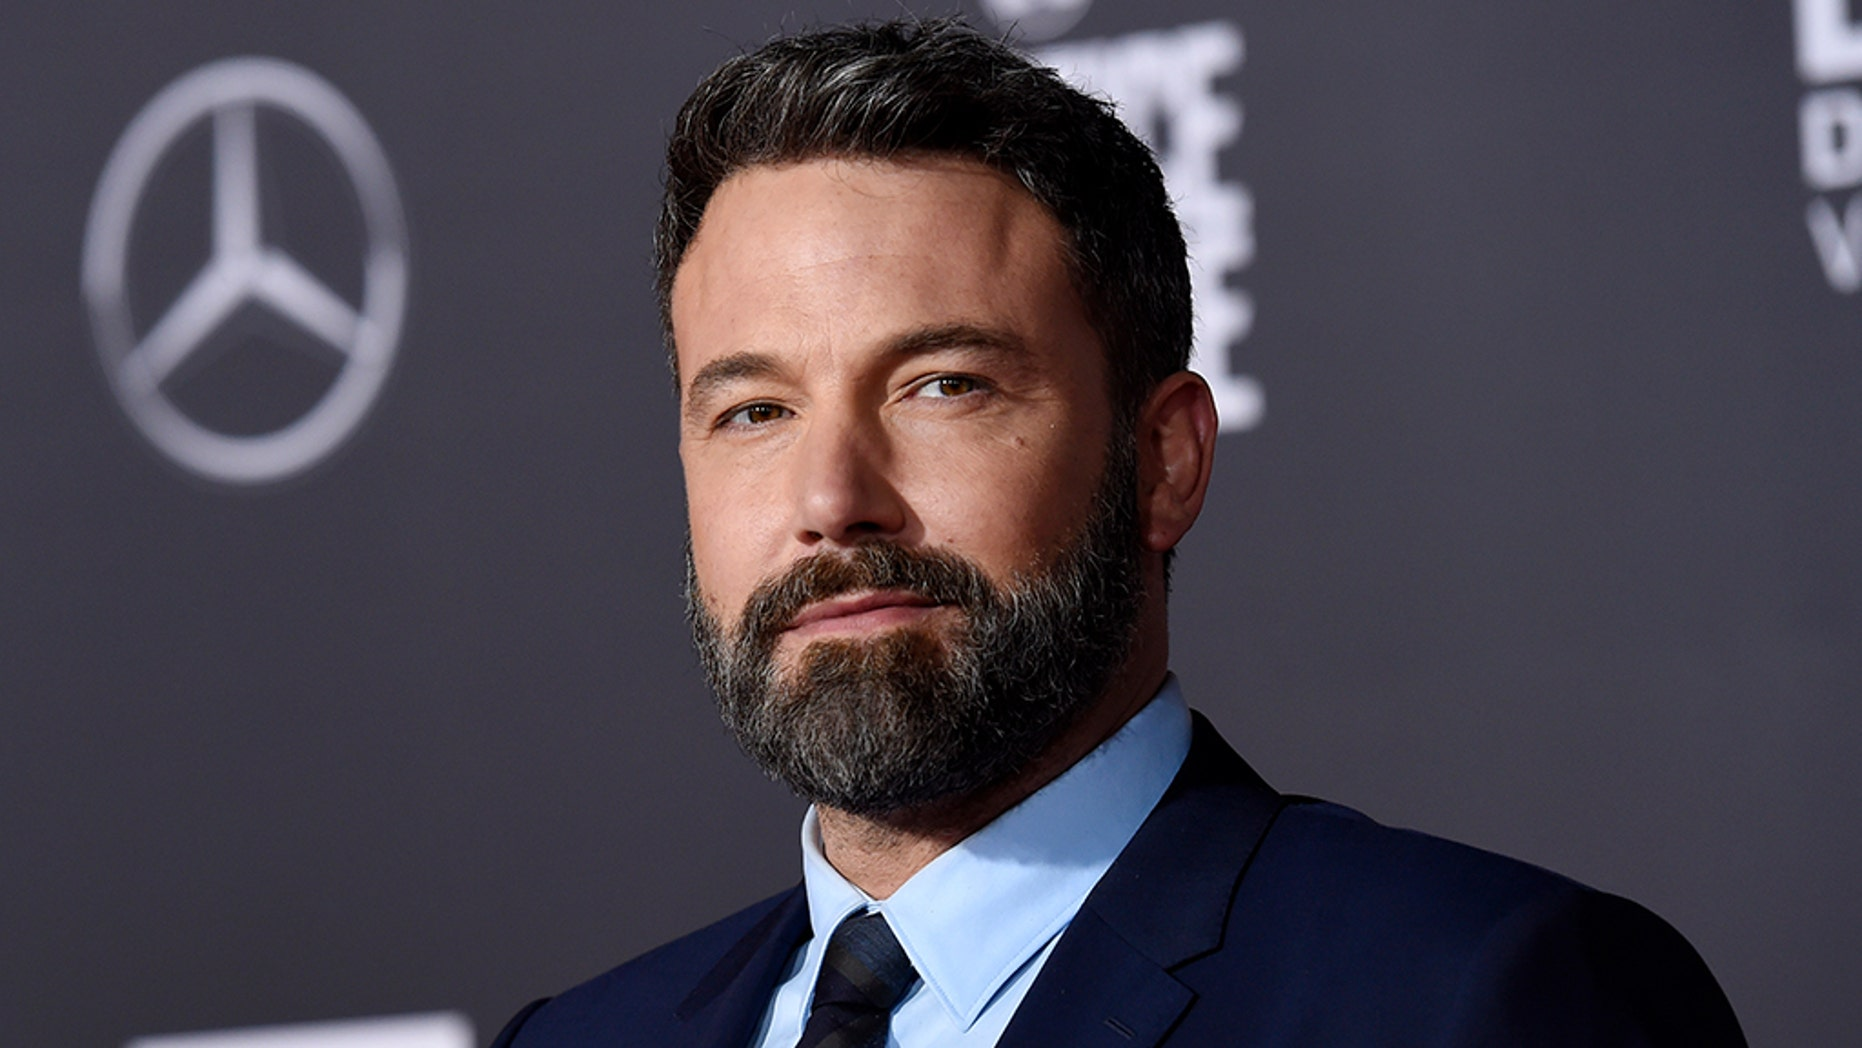 A video clip of Ben Affleck speaking about music and movie consumption has gone viral on Twitter.